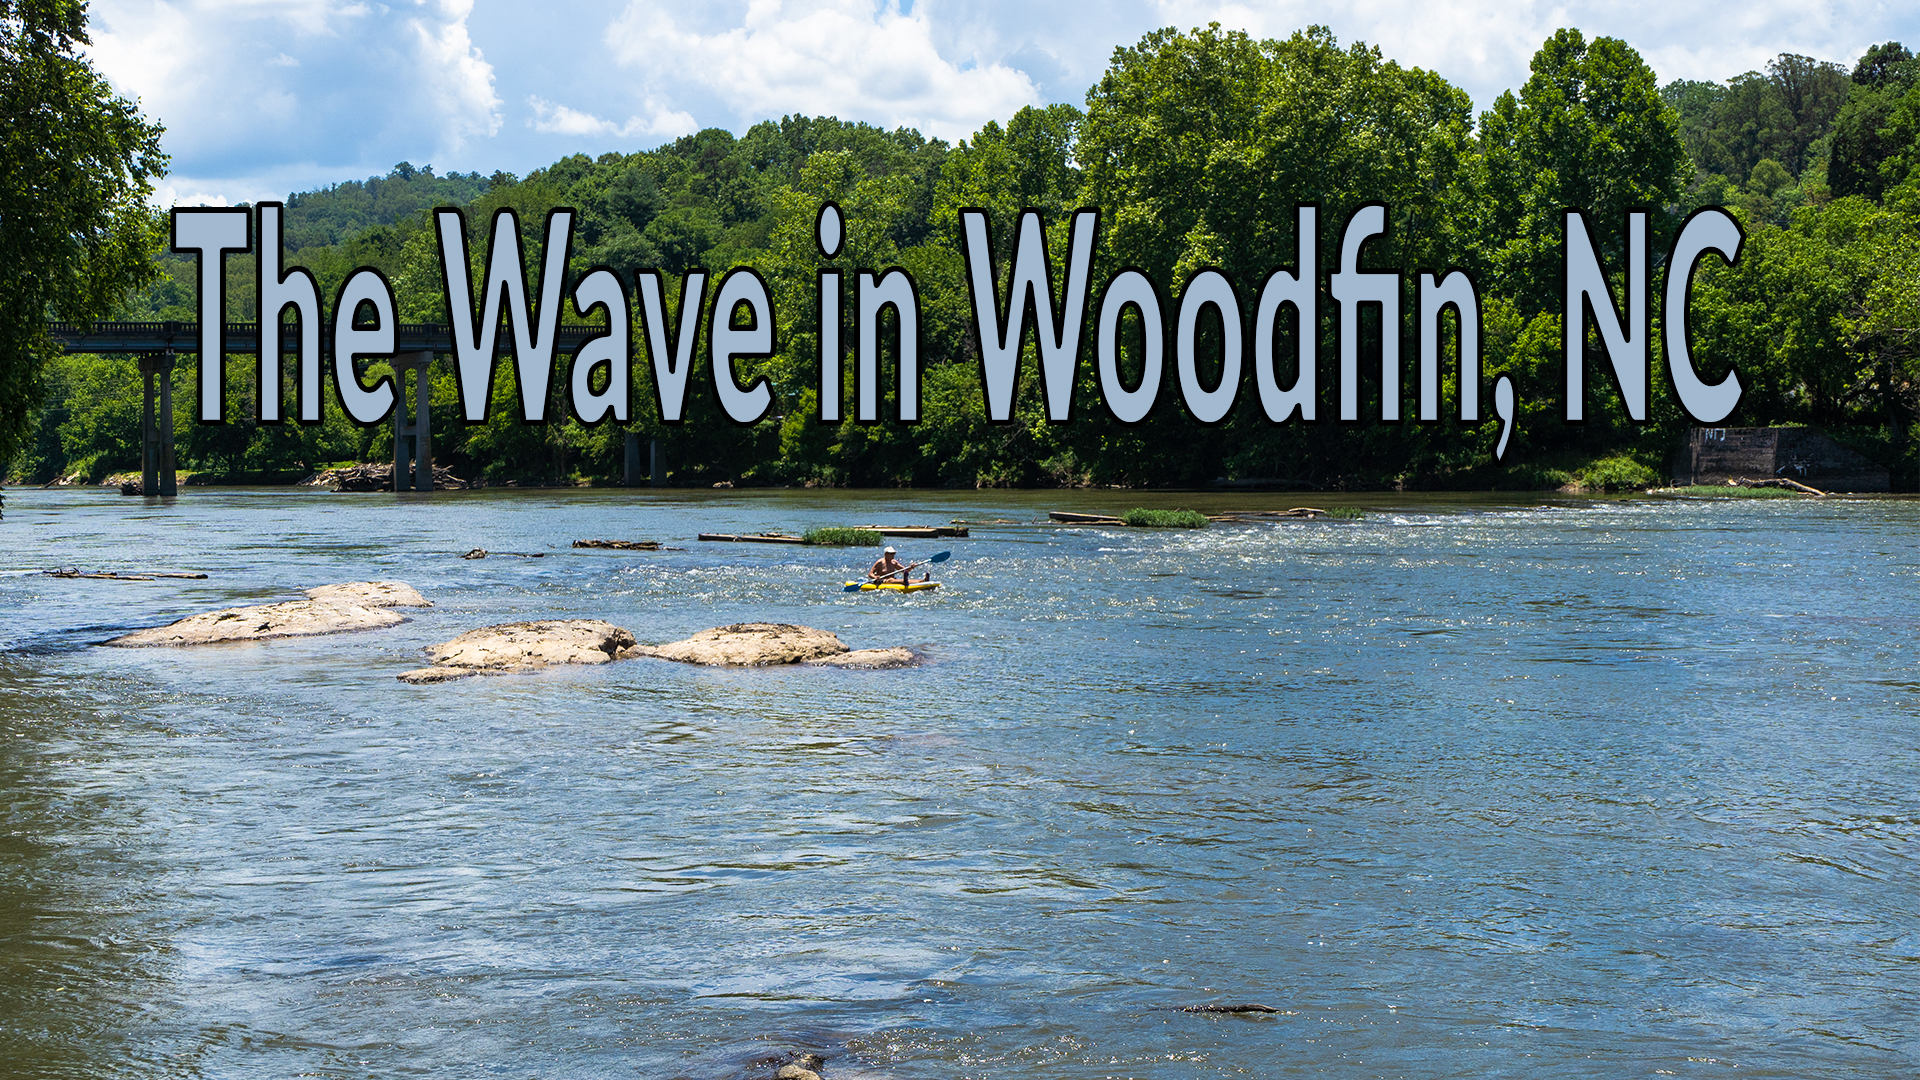 Woodfin, North Carolina's 'Wave' of the Future